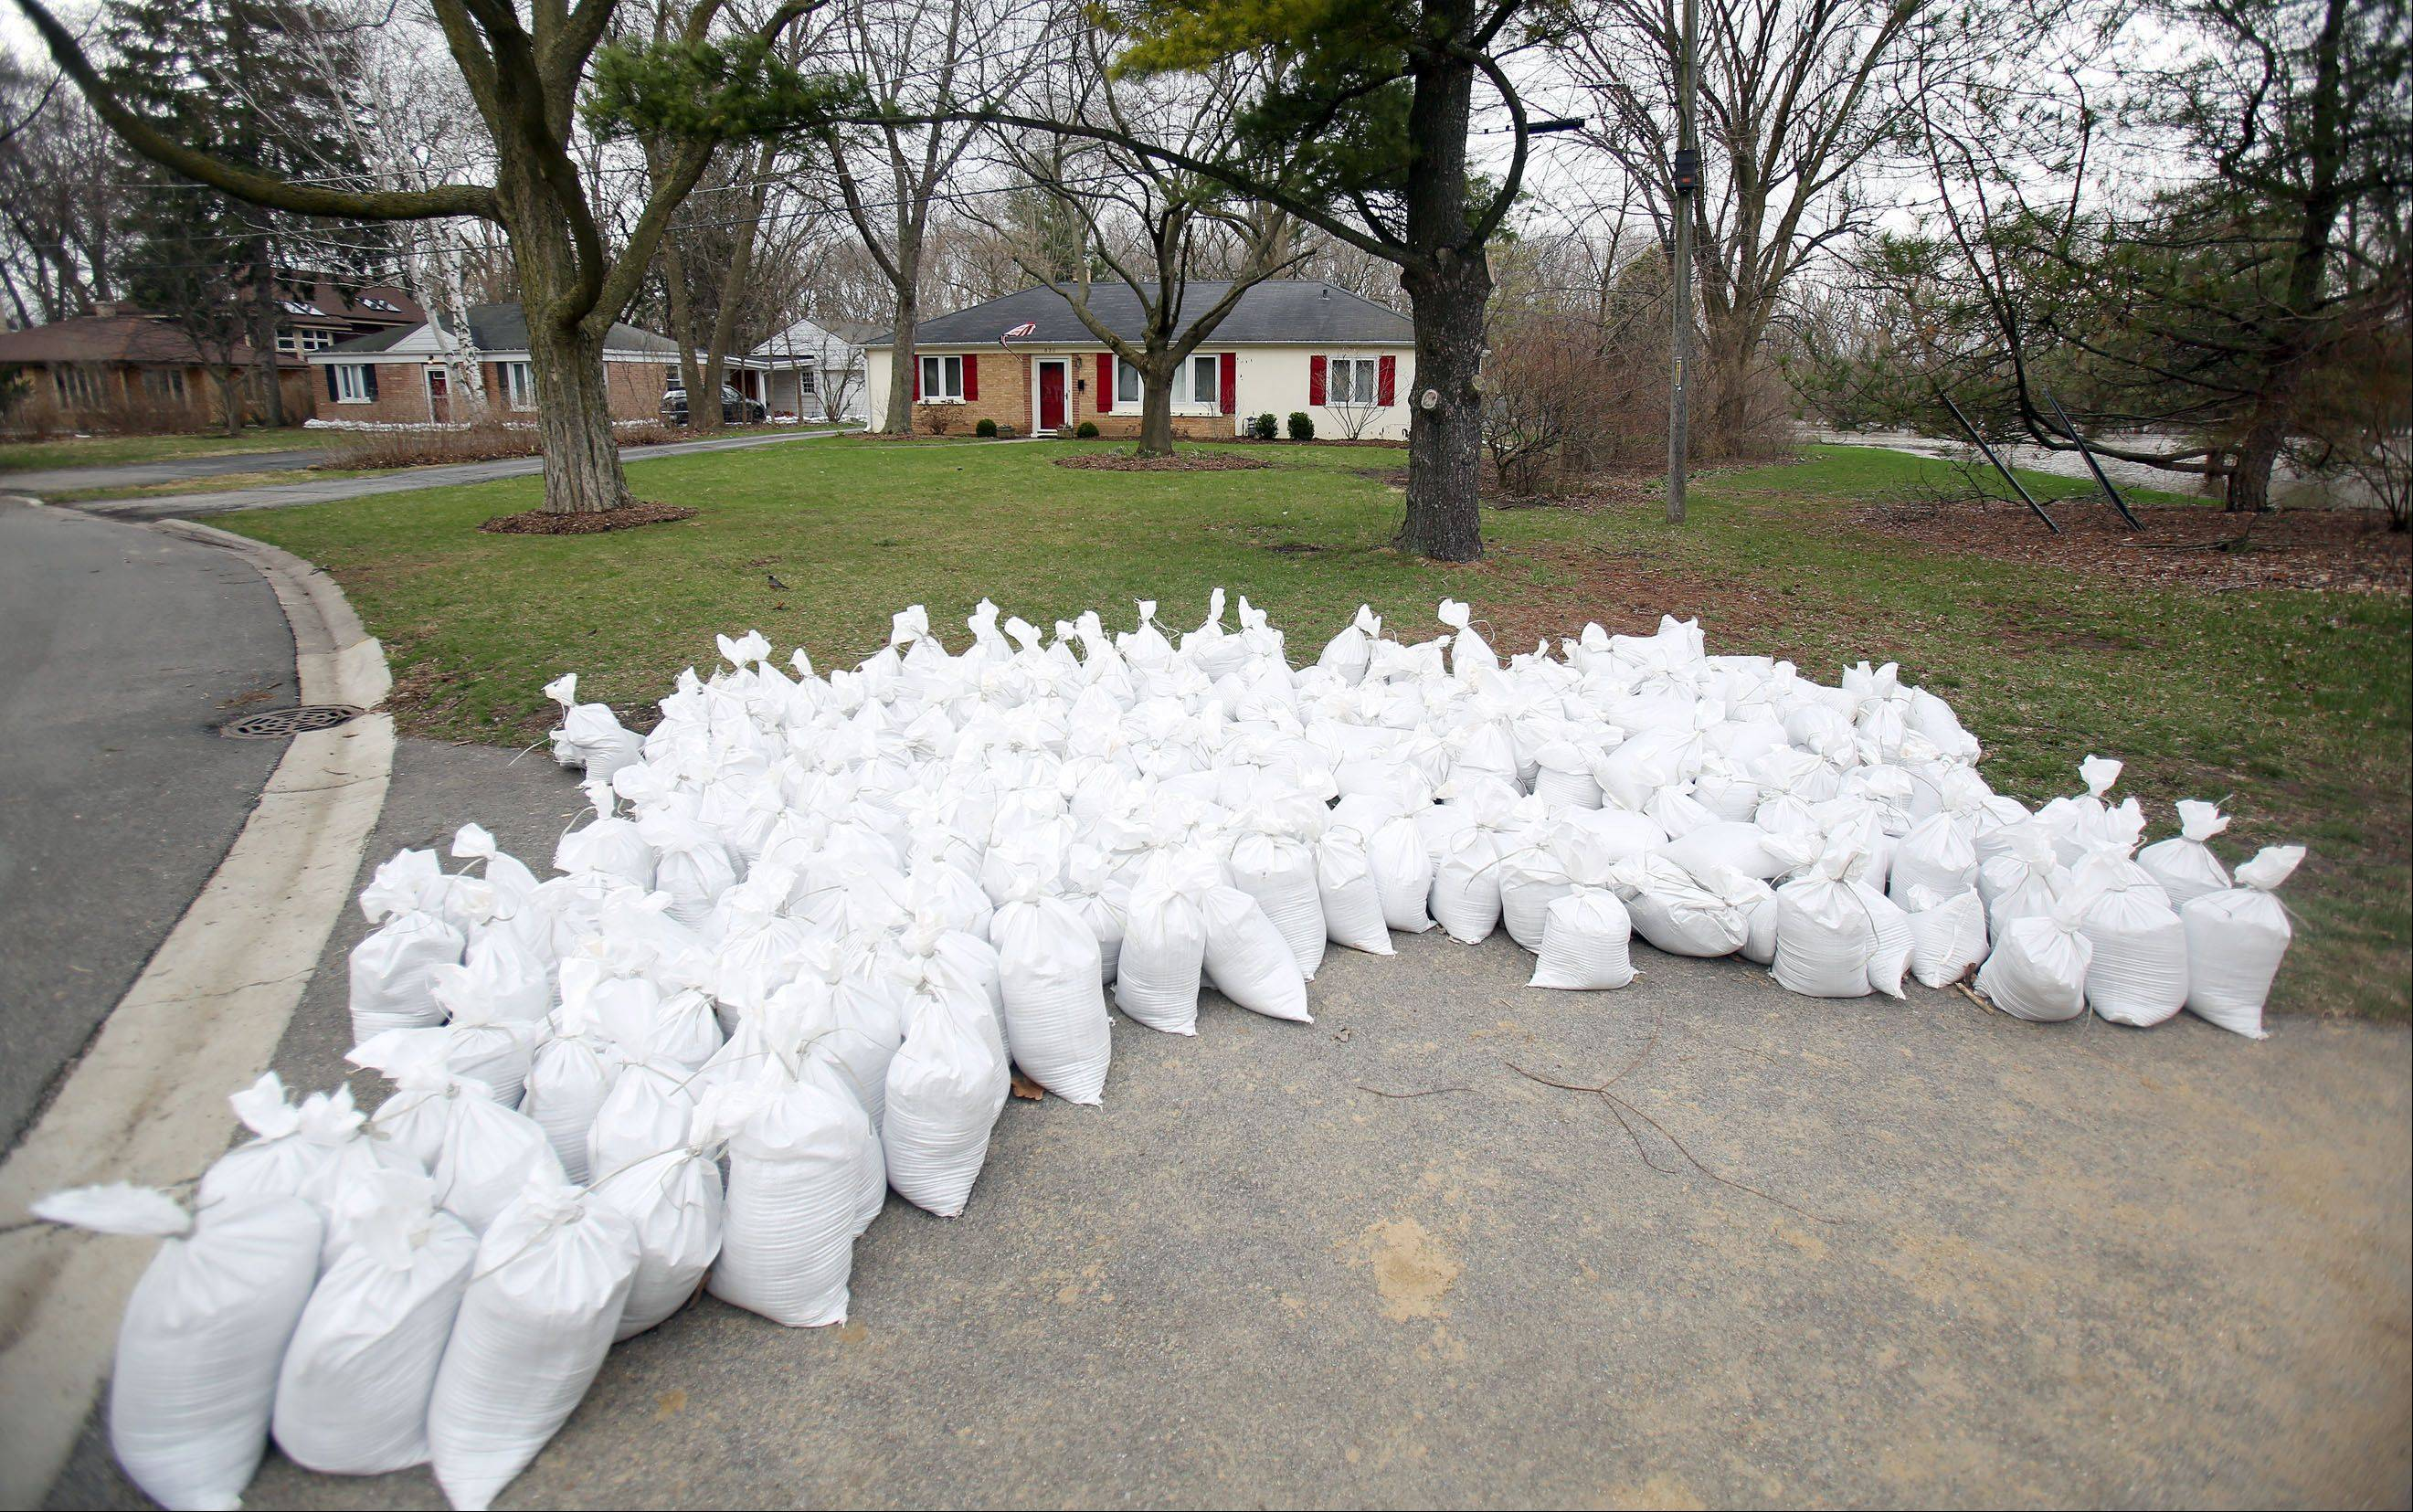 Sands bags sit in reserve at Riverside Park as the Des Plaines River continues to rise Friday morning in Libertyville.